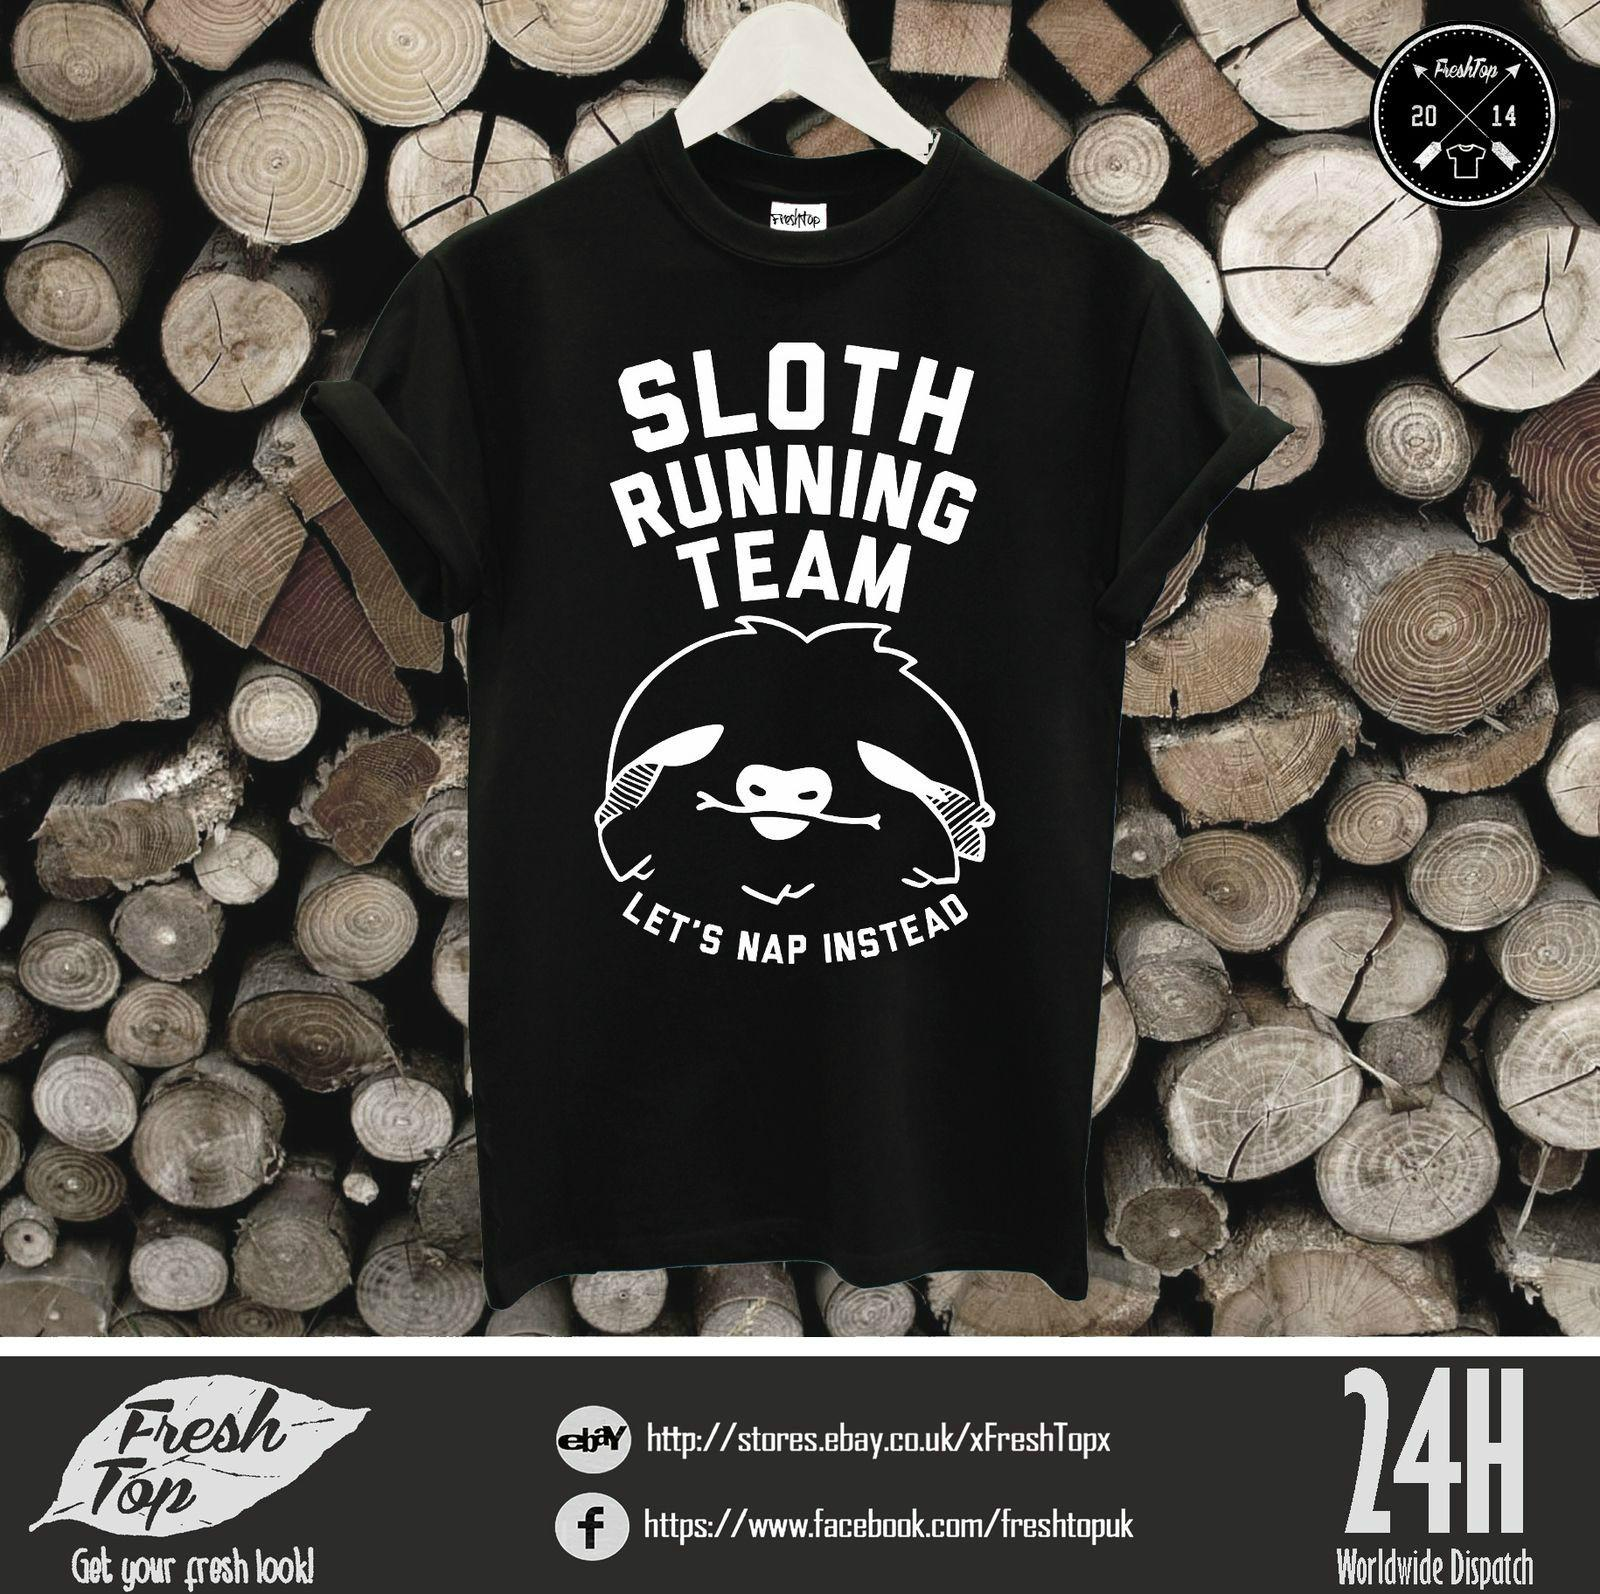 9f0f38ef5 Sloth Running Team Let's Nap Instead T Shirt Lazy Yoga Running Gym Ask Me  Why funny 100% Cotton free shipping t shirt